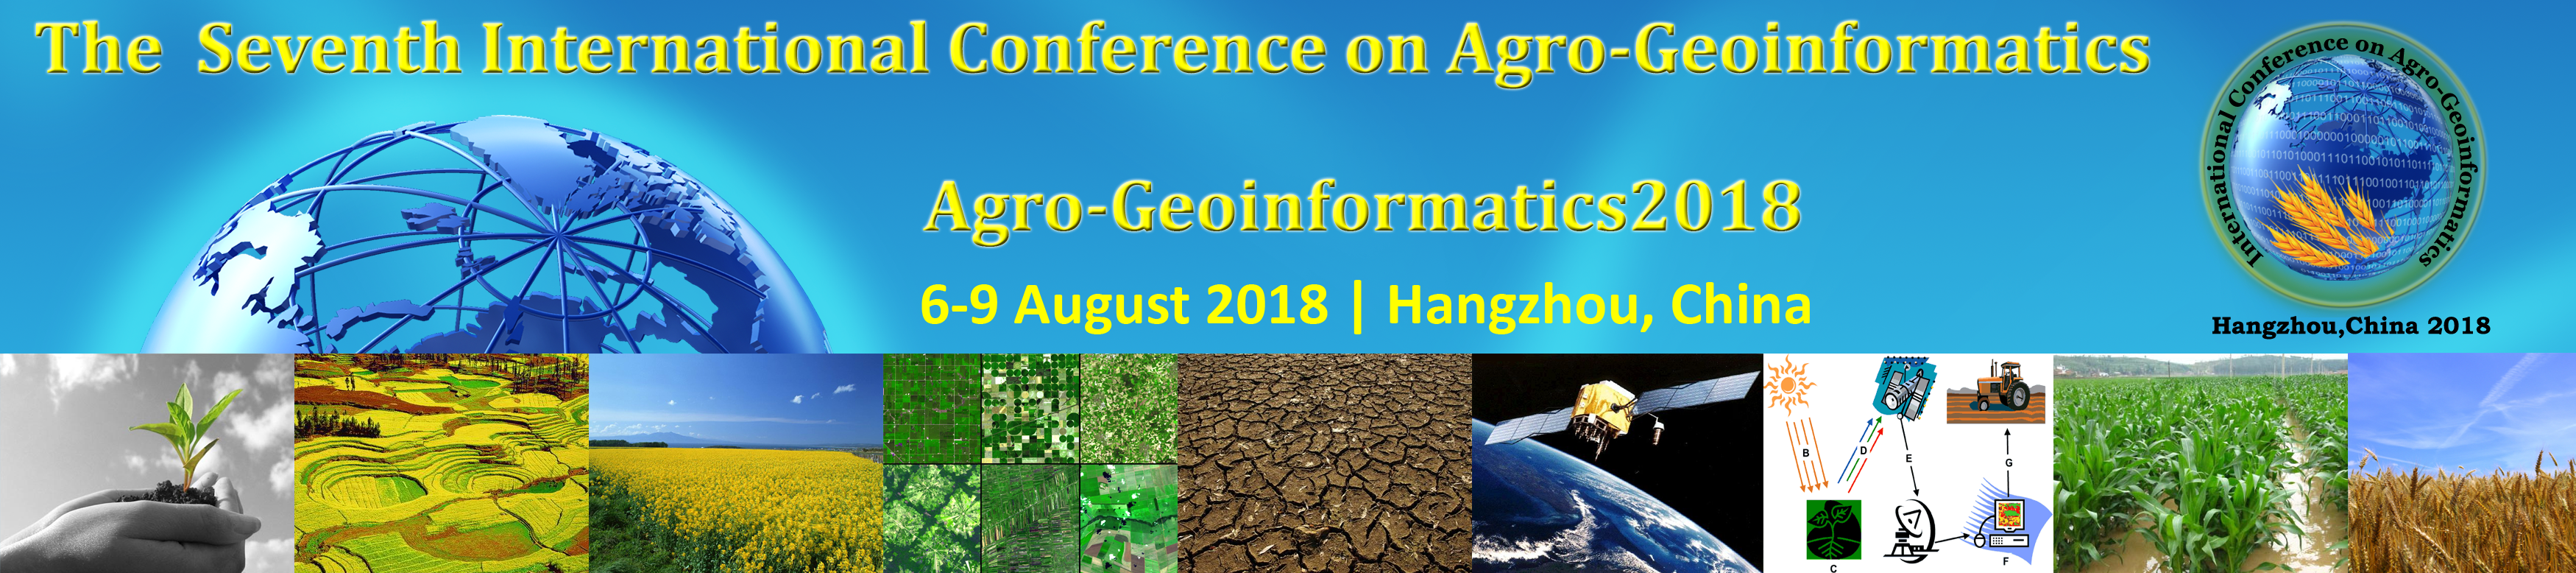 research papers geoinformatics It publishes original research papers,  the journal publishes on  petroleum, geohazards, environmental geosciences and sustainable development, geoinformatics.